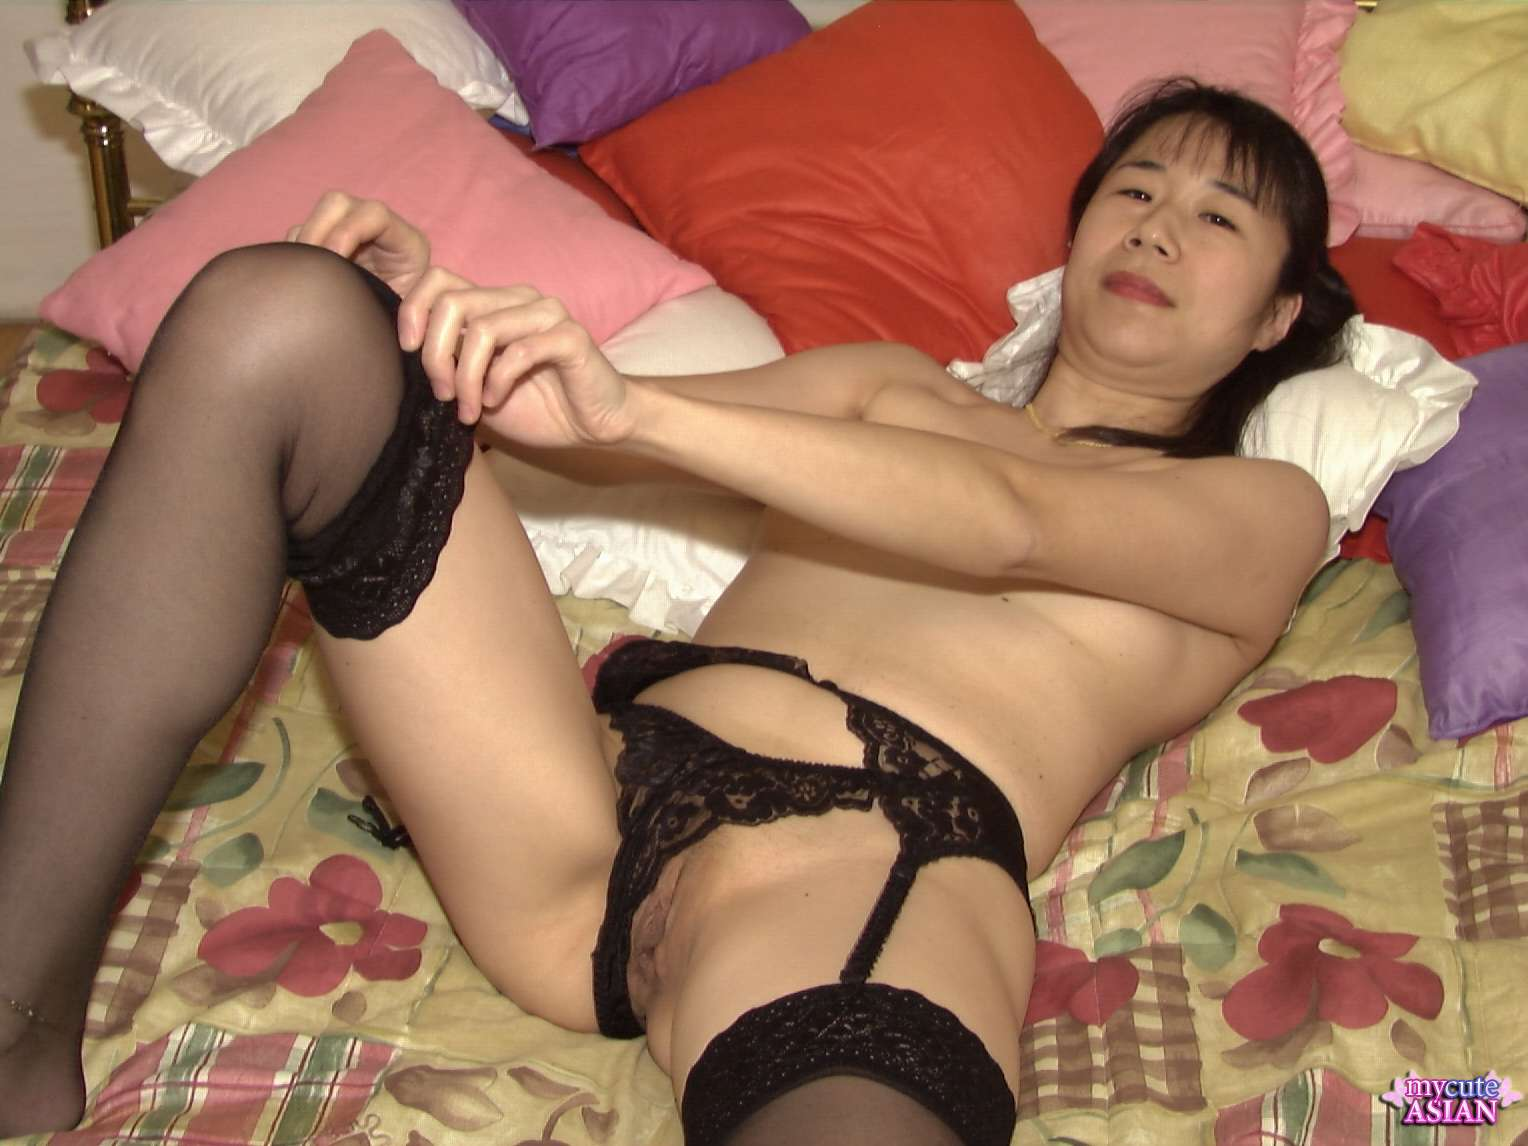 Milf Asian Fingers Her Hairy Pussy - Ass Point-2477